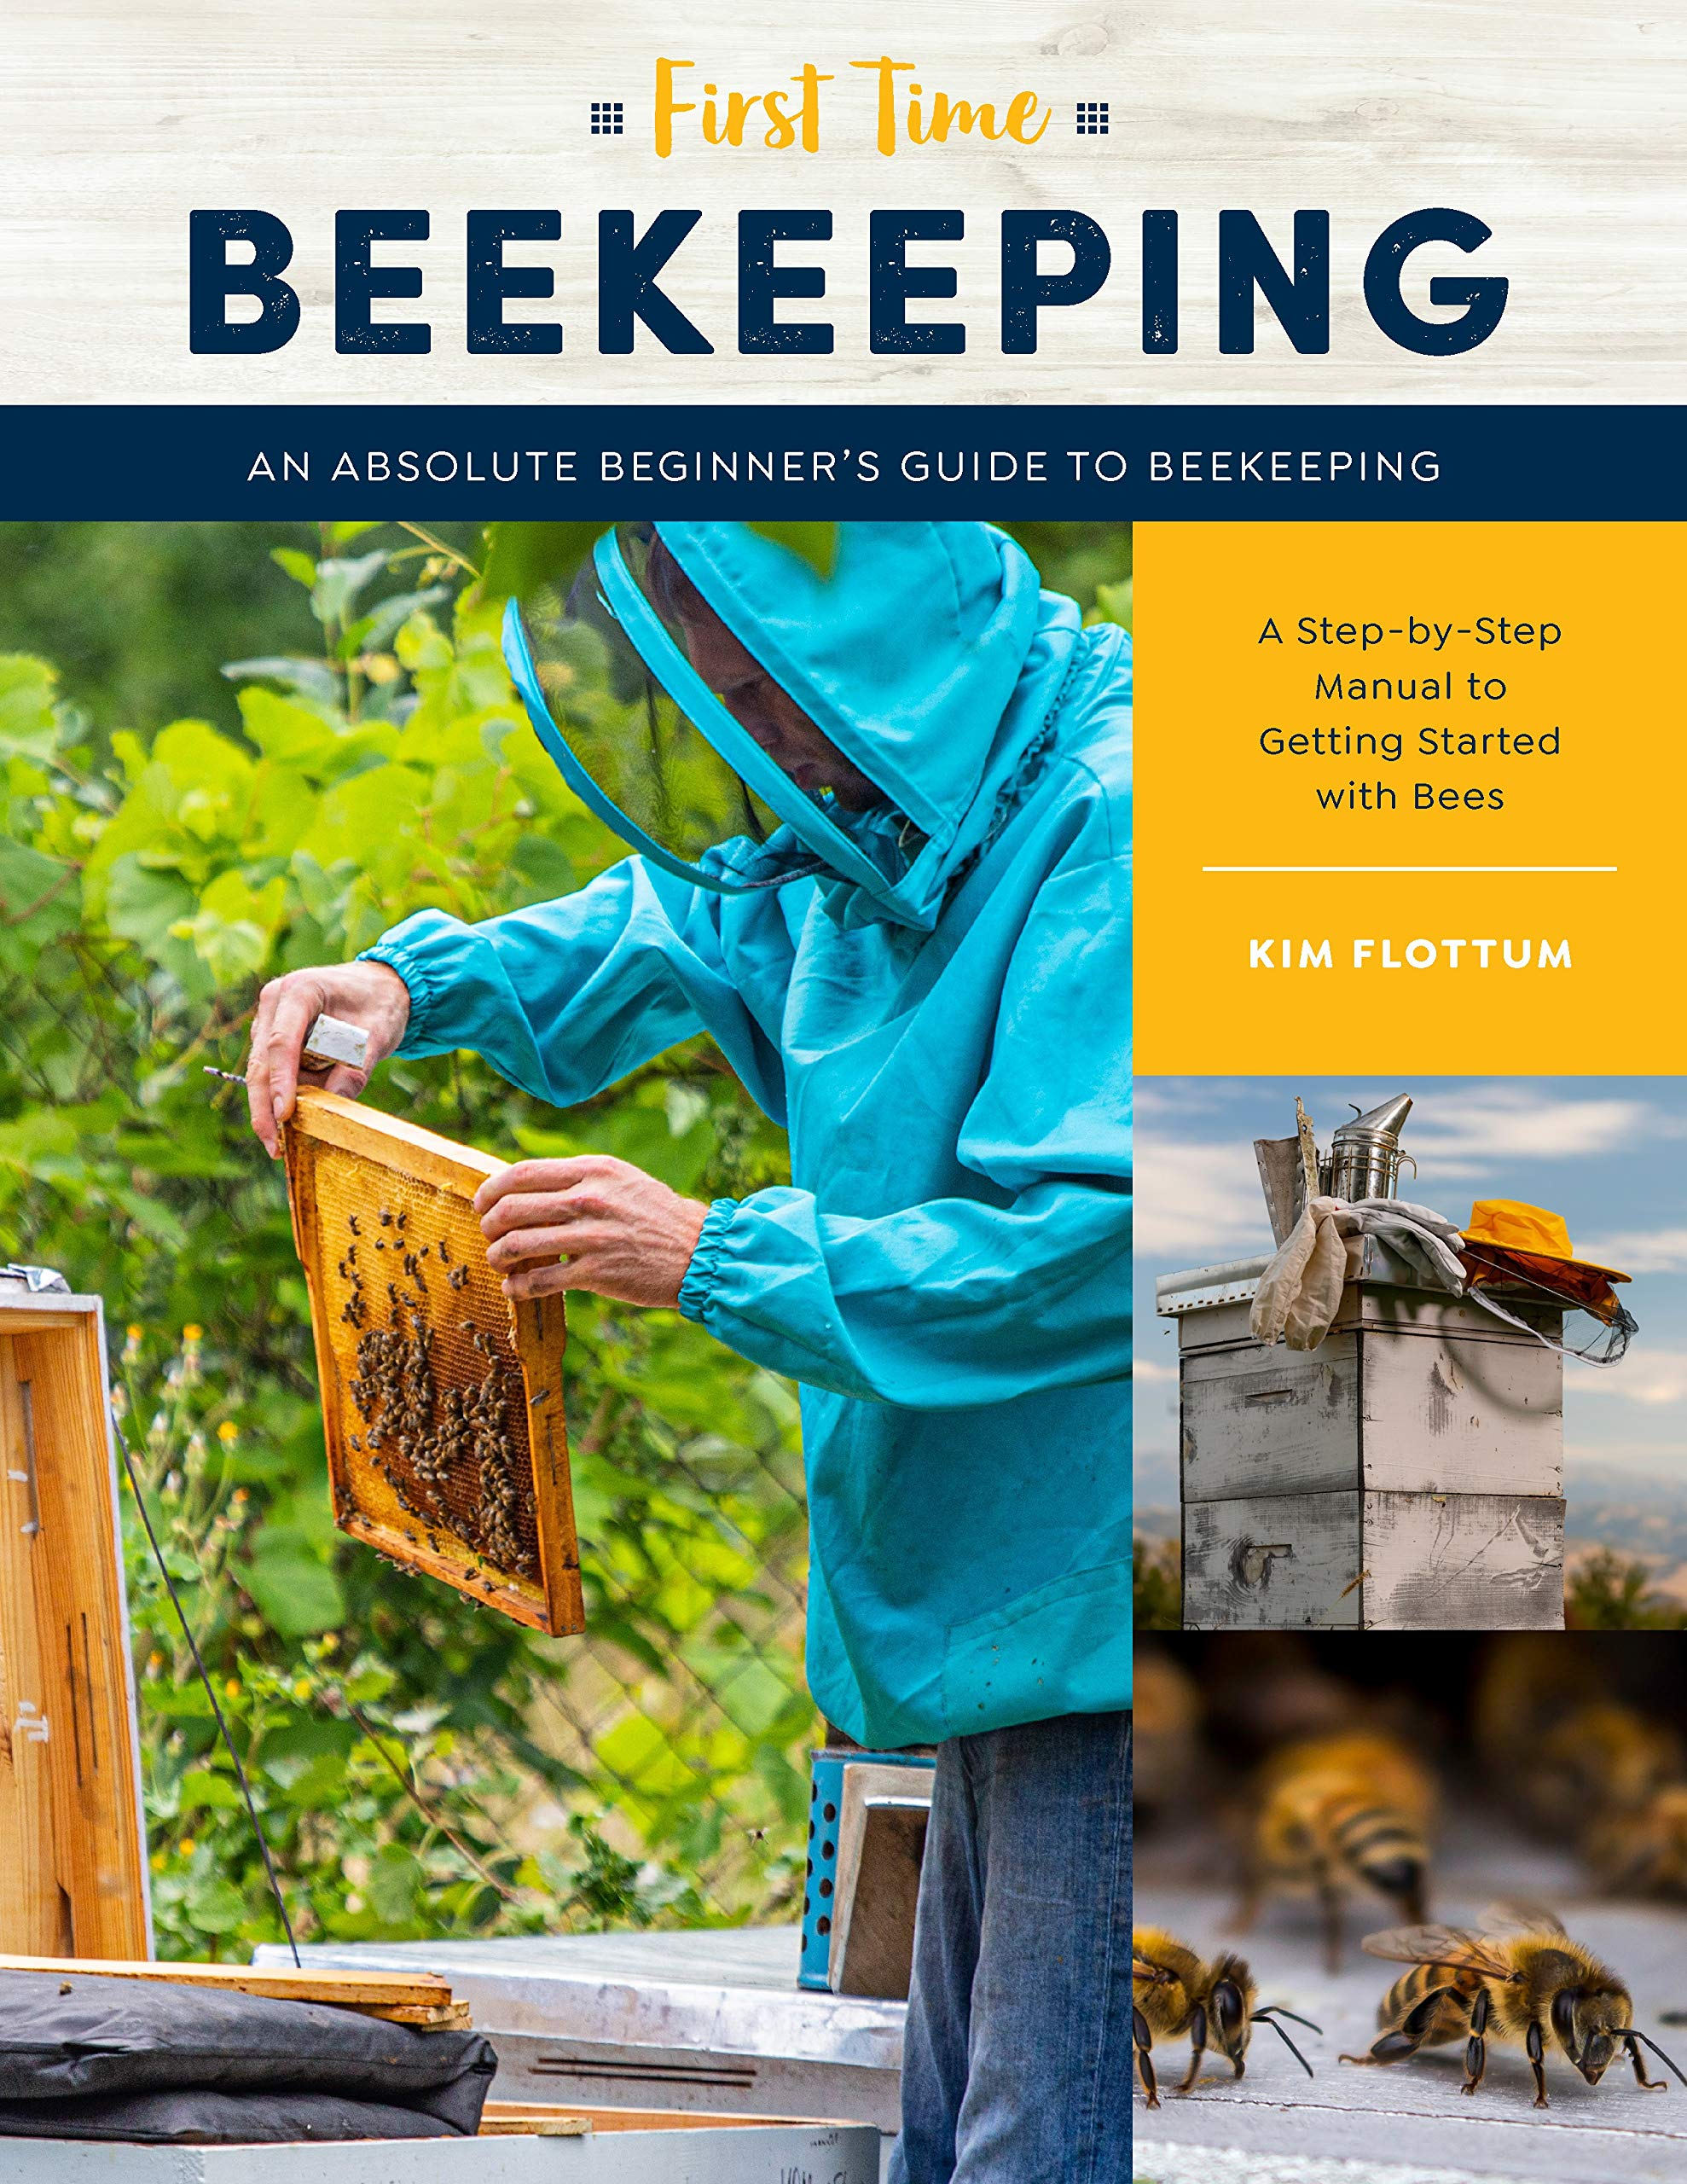 First Time Beekeeping: An Absolute Beginners Guide to Beekeeping